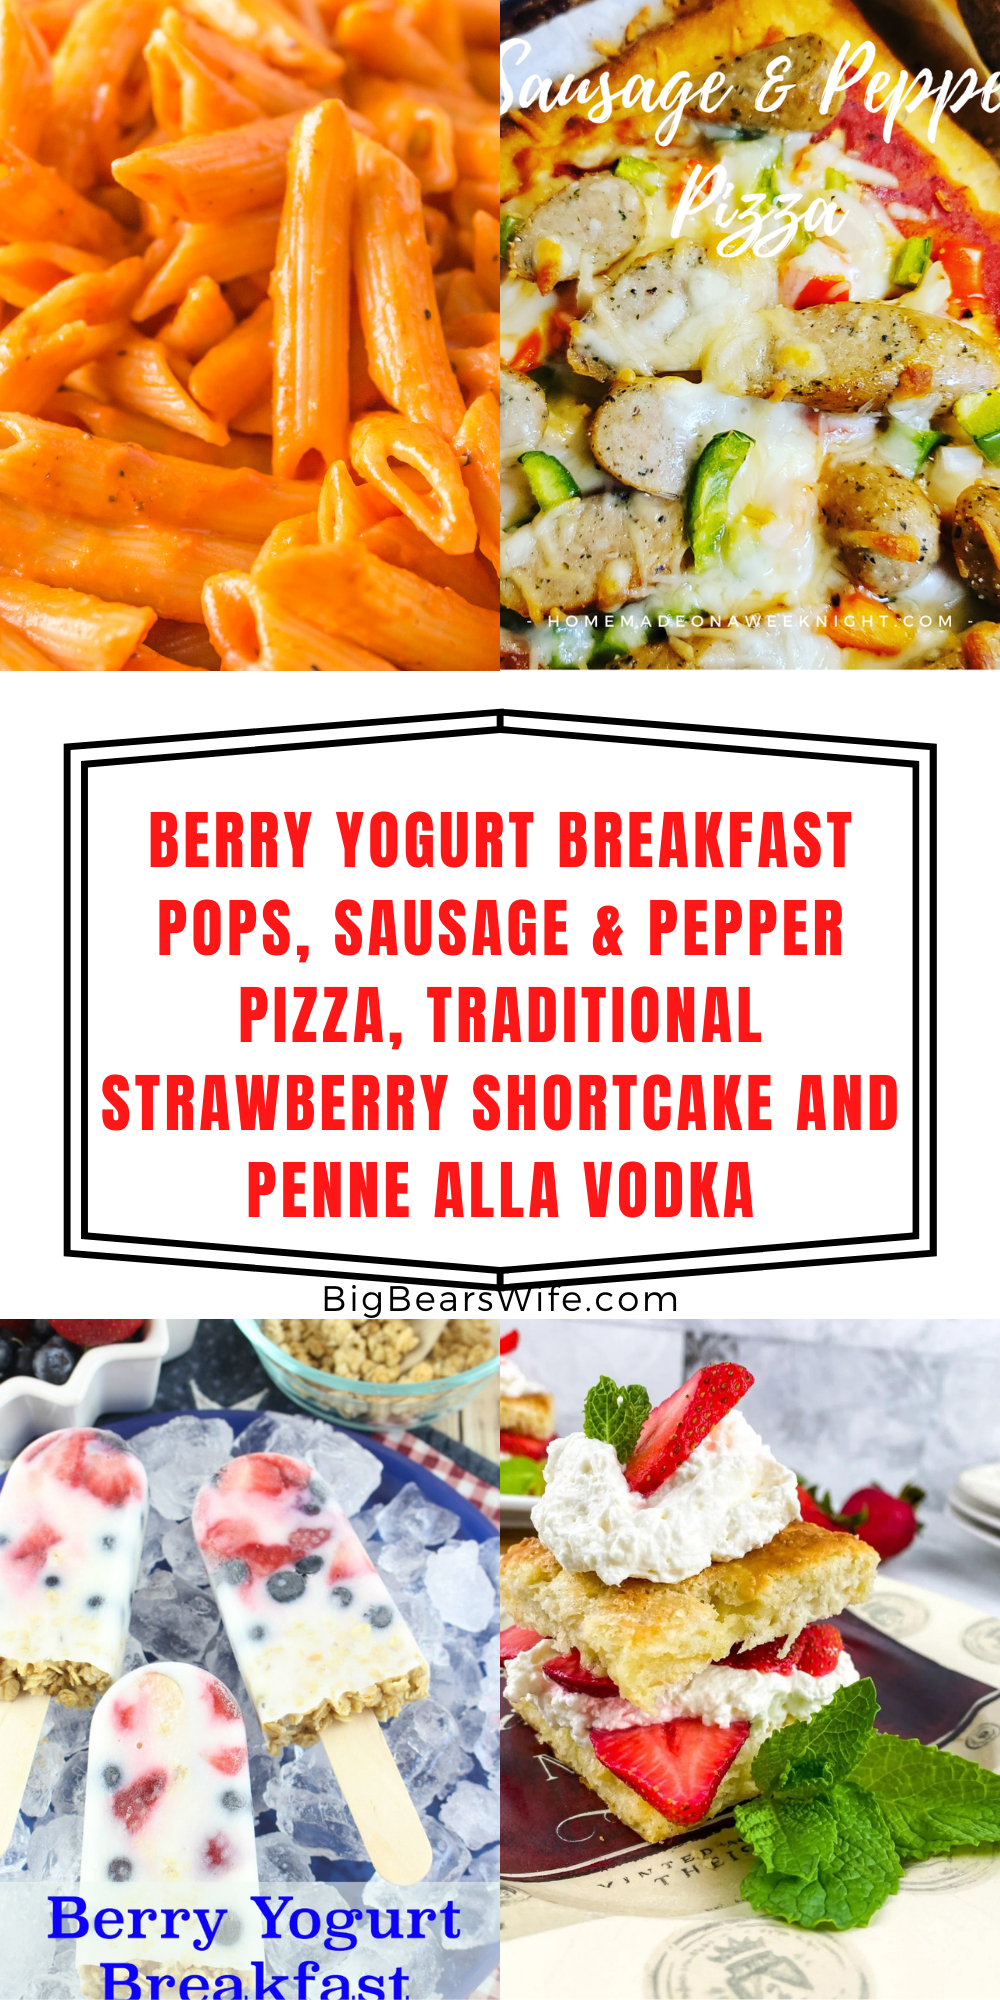 Welcome to Meal Plan Monday 271!  This week we're featuring recipes for Berry Yogurt Breakfast Pops, Sausage & Pepper Pizza, Traditional Strawberry Shortcake and Penne Alla Vodka! via @bigbearswife